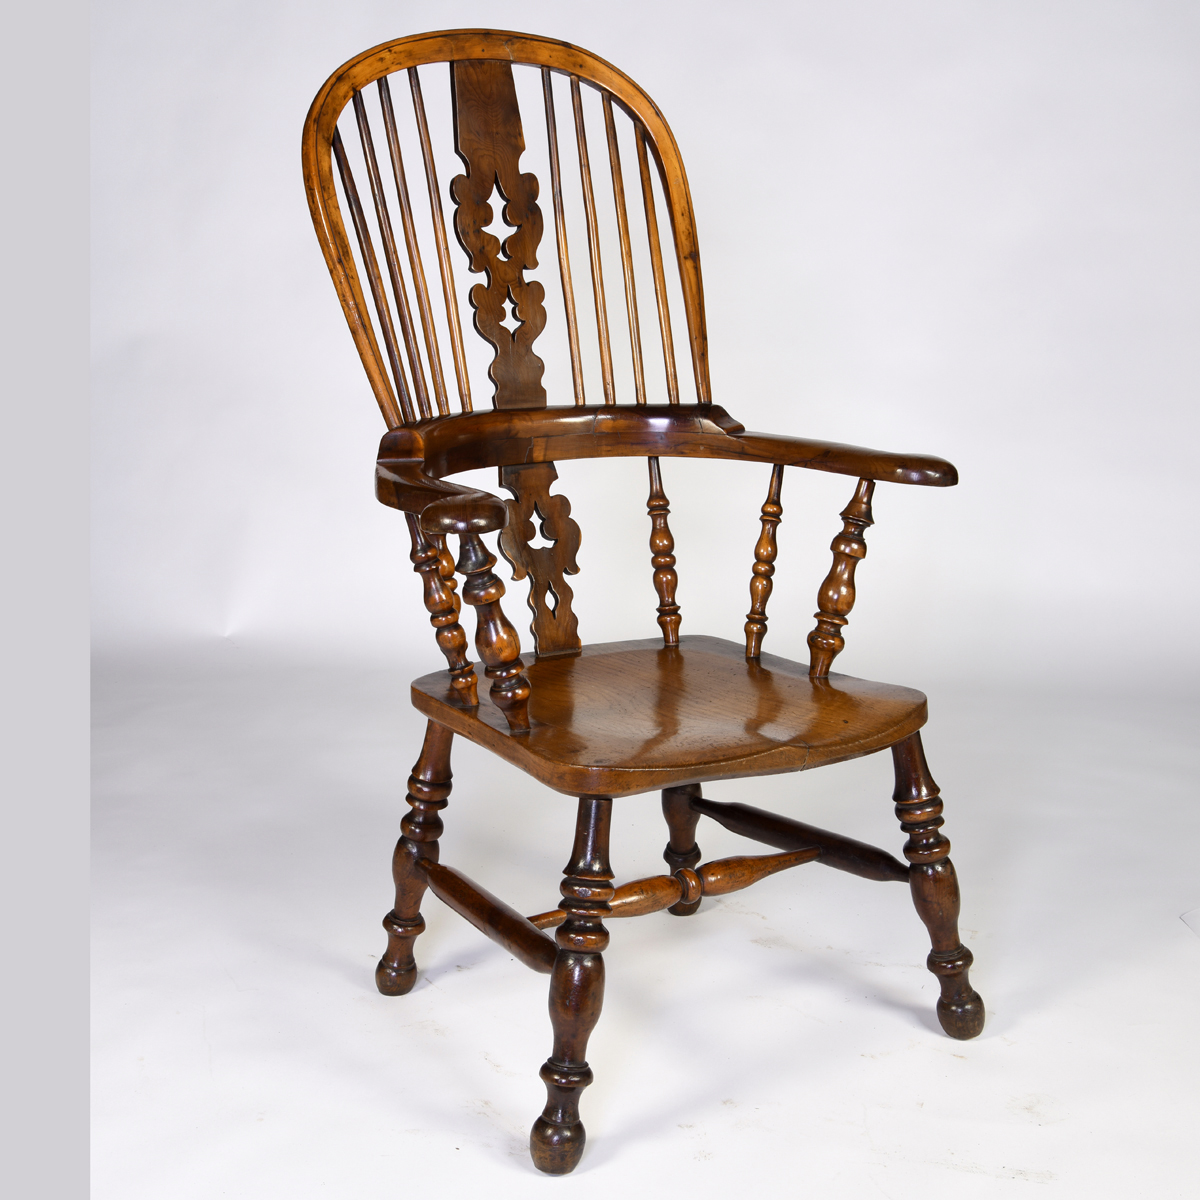 Antique English Yew Wood Windsor Armchair |English ...